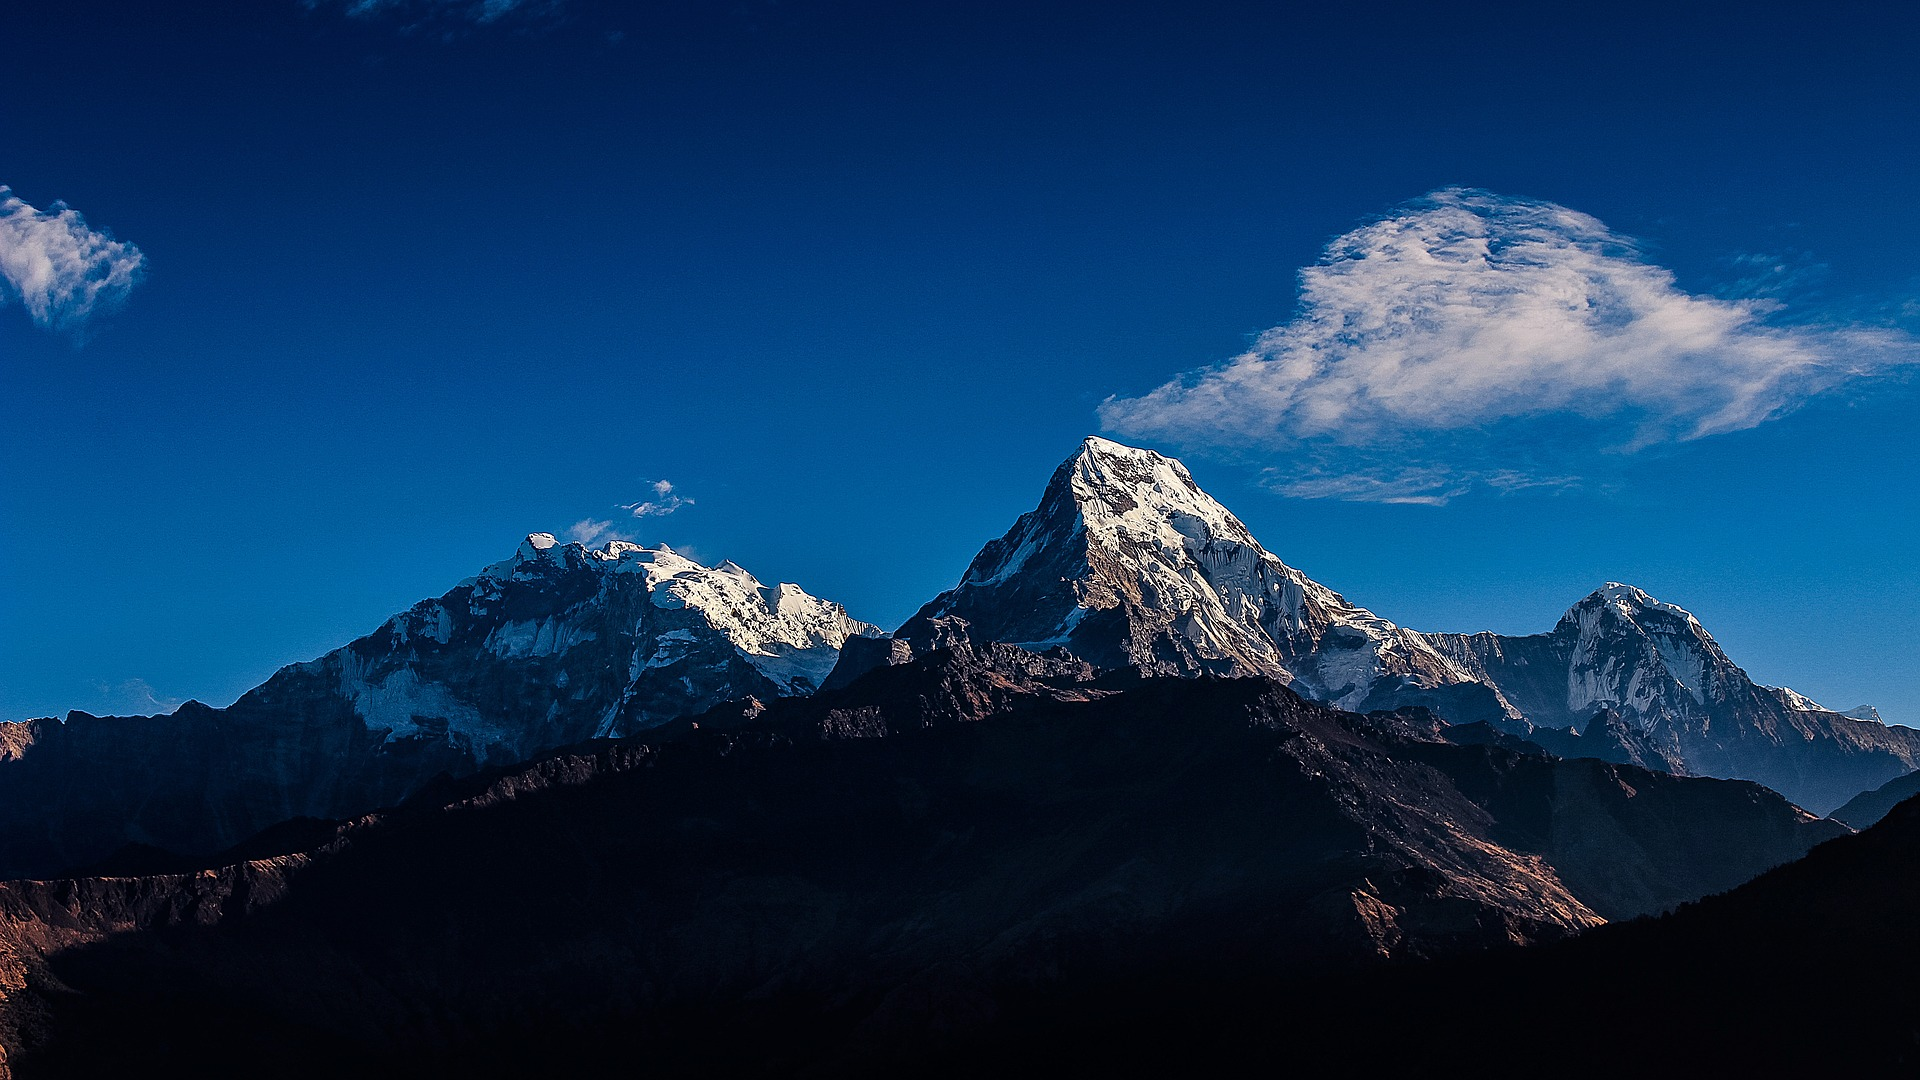 How Much Does Annapurna Circuit Cost